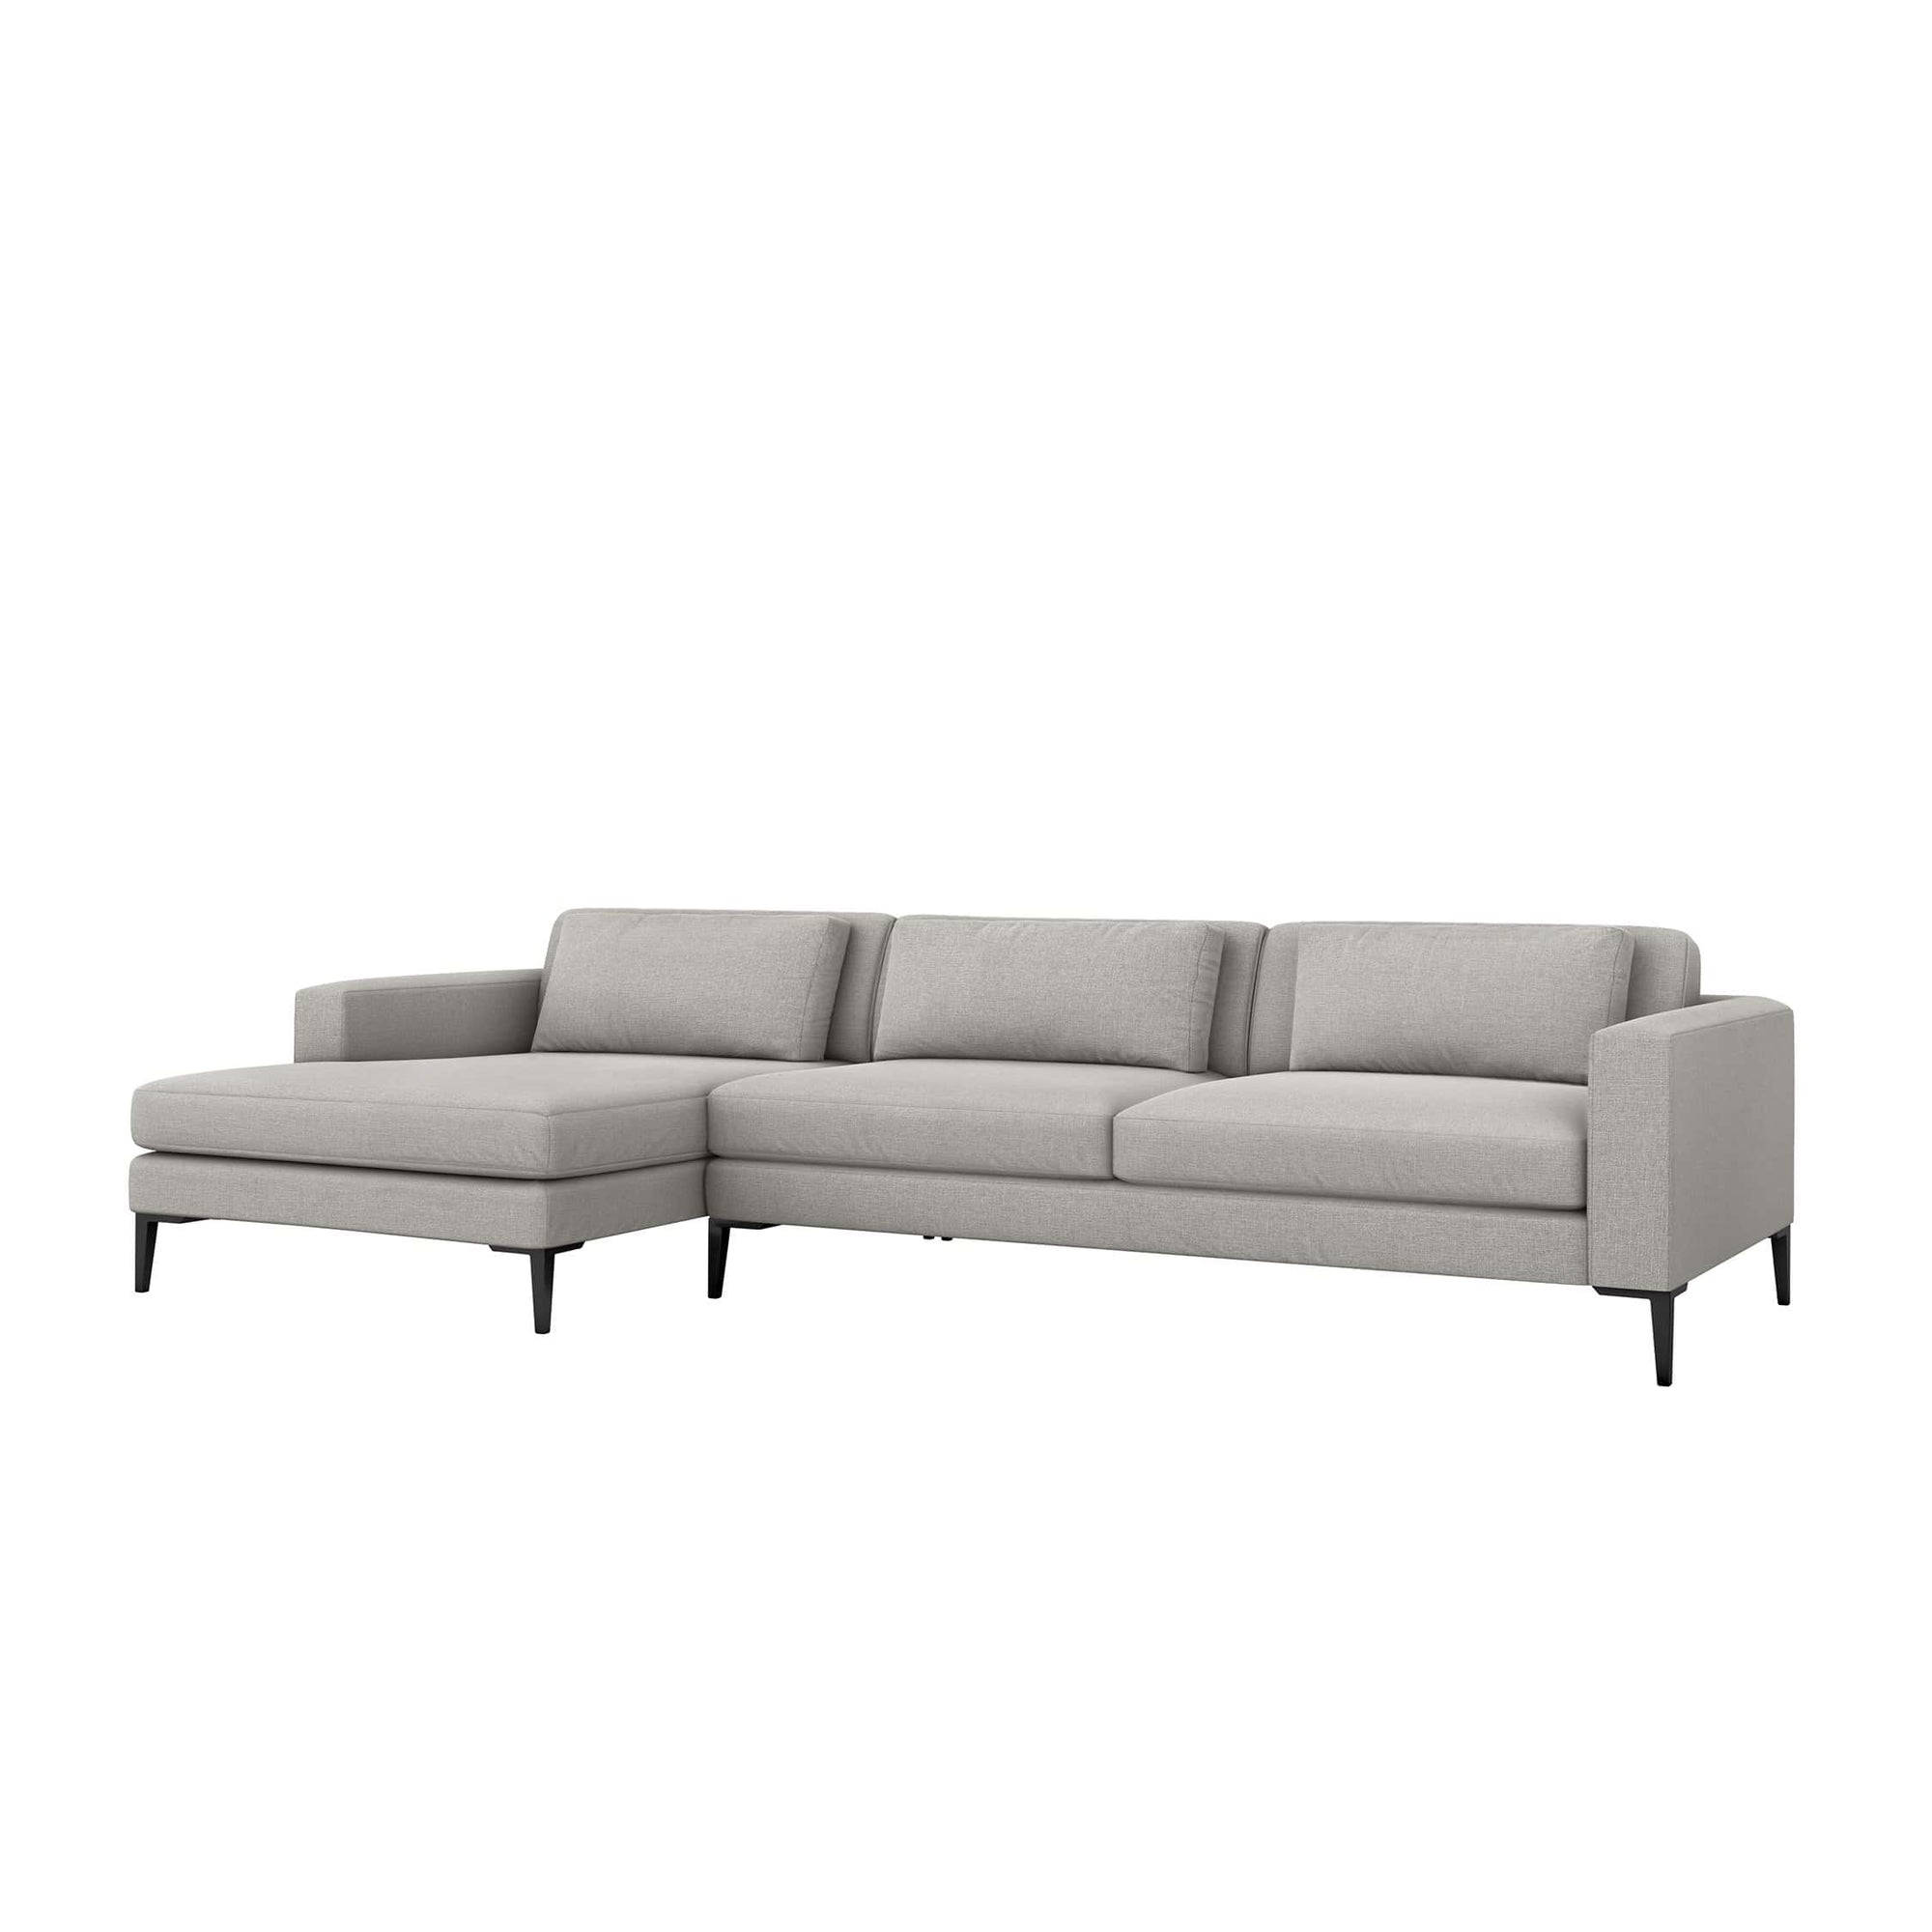 Interlude Home Interlude Home Izzy Left Chaise 2 Piece Sectional - Light Gray 199015-6